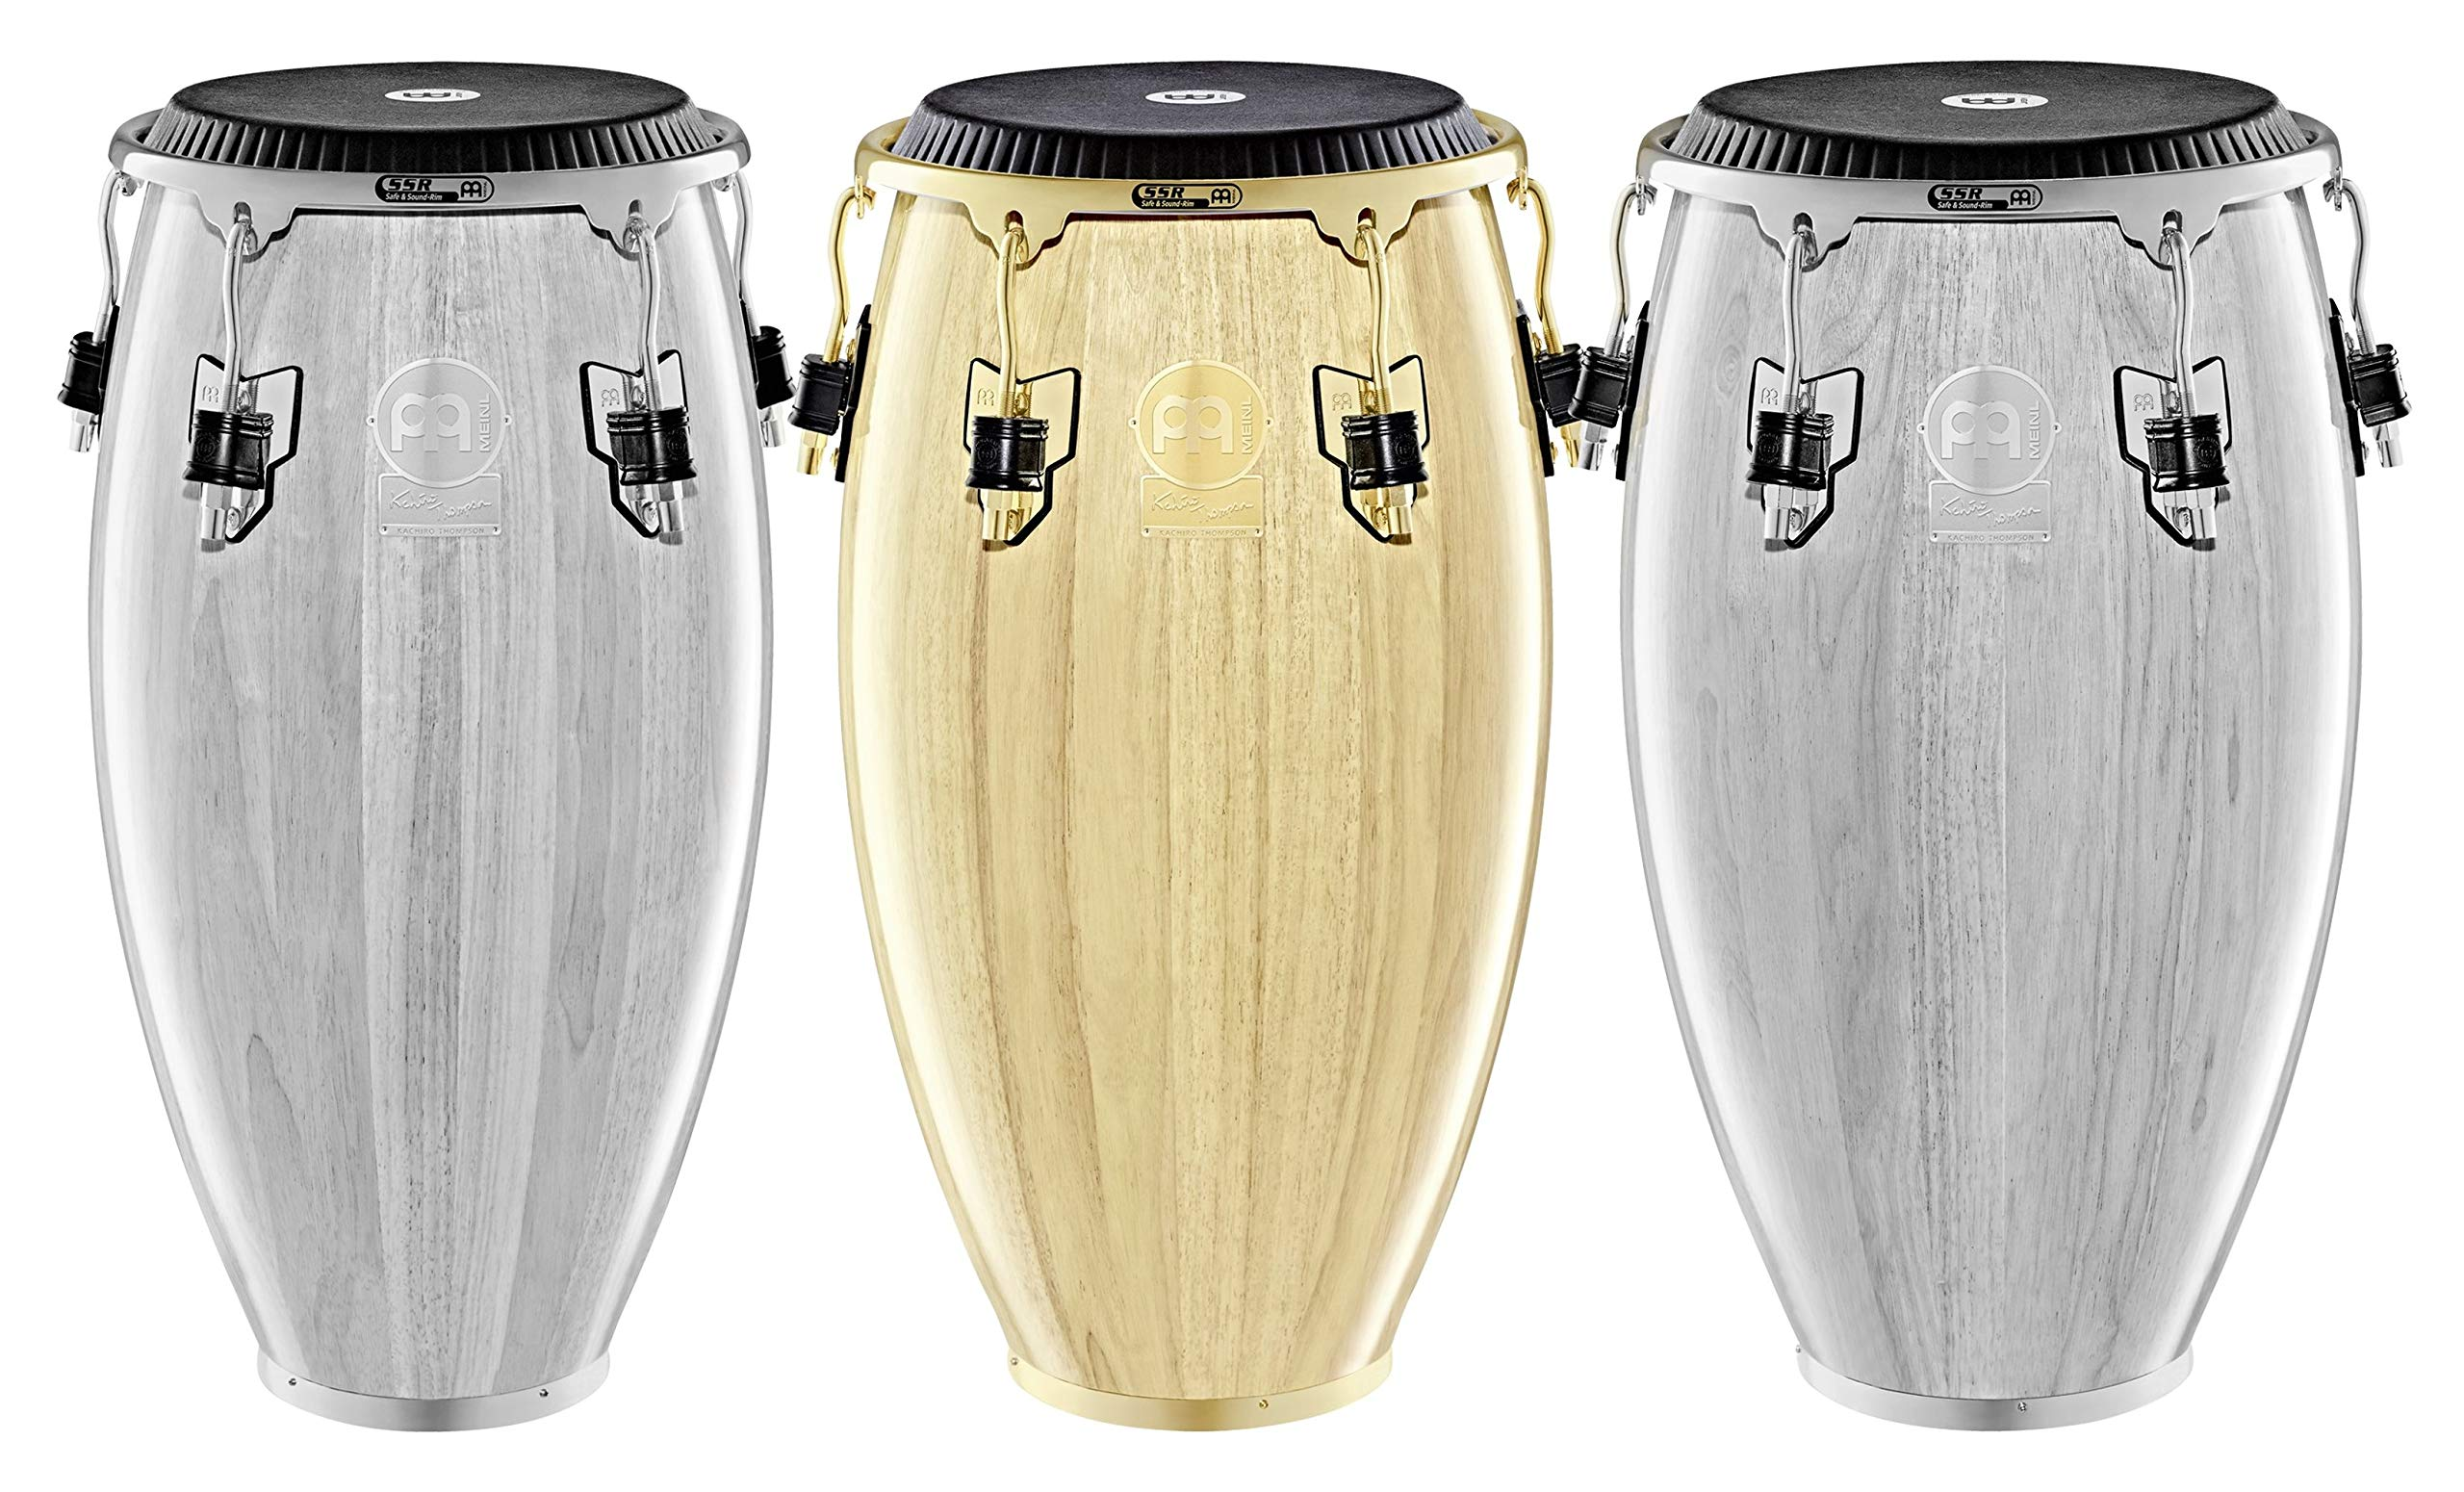 Meinl Percussion Conga with Hardwood Shell, Artist Series Kachiro Thompson-NOT MADE IN CHINA-Natural Finish, 11 3/4'' REMO Black Fiberskyn Head, 2-YEAR WARRANTY (WKTR1134NT) by Meinl Percussion